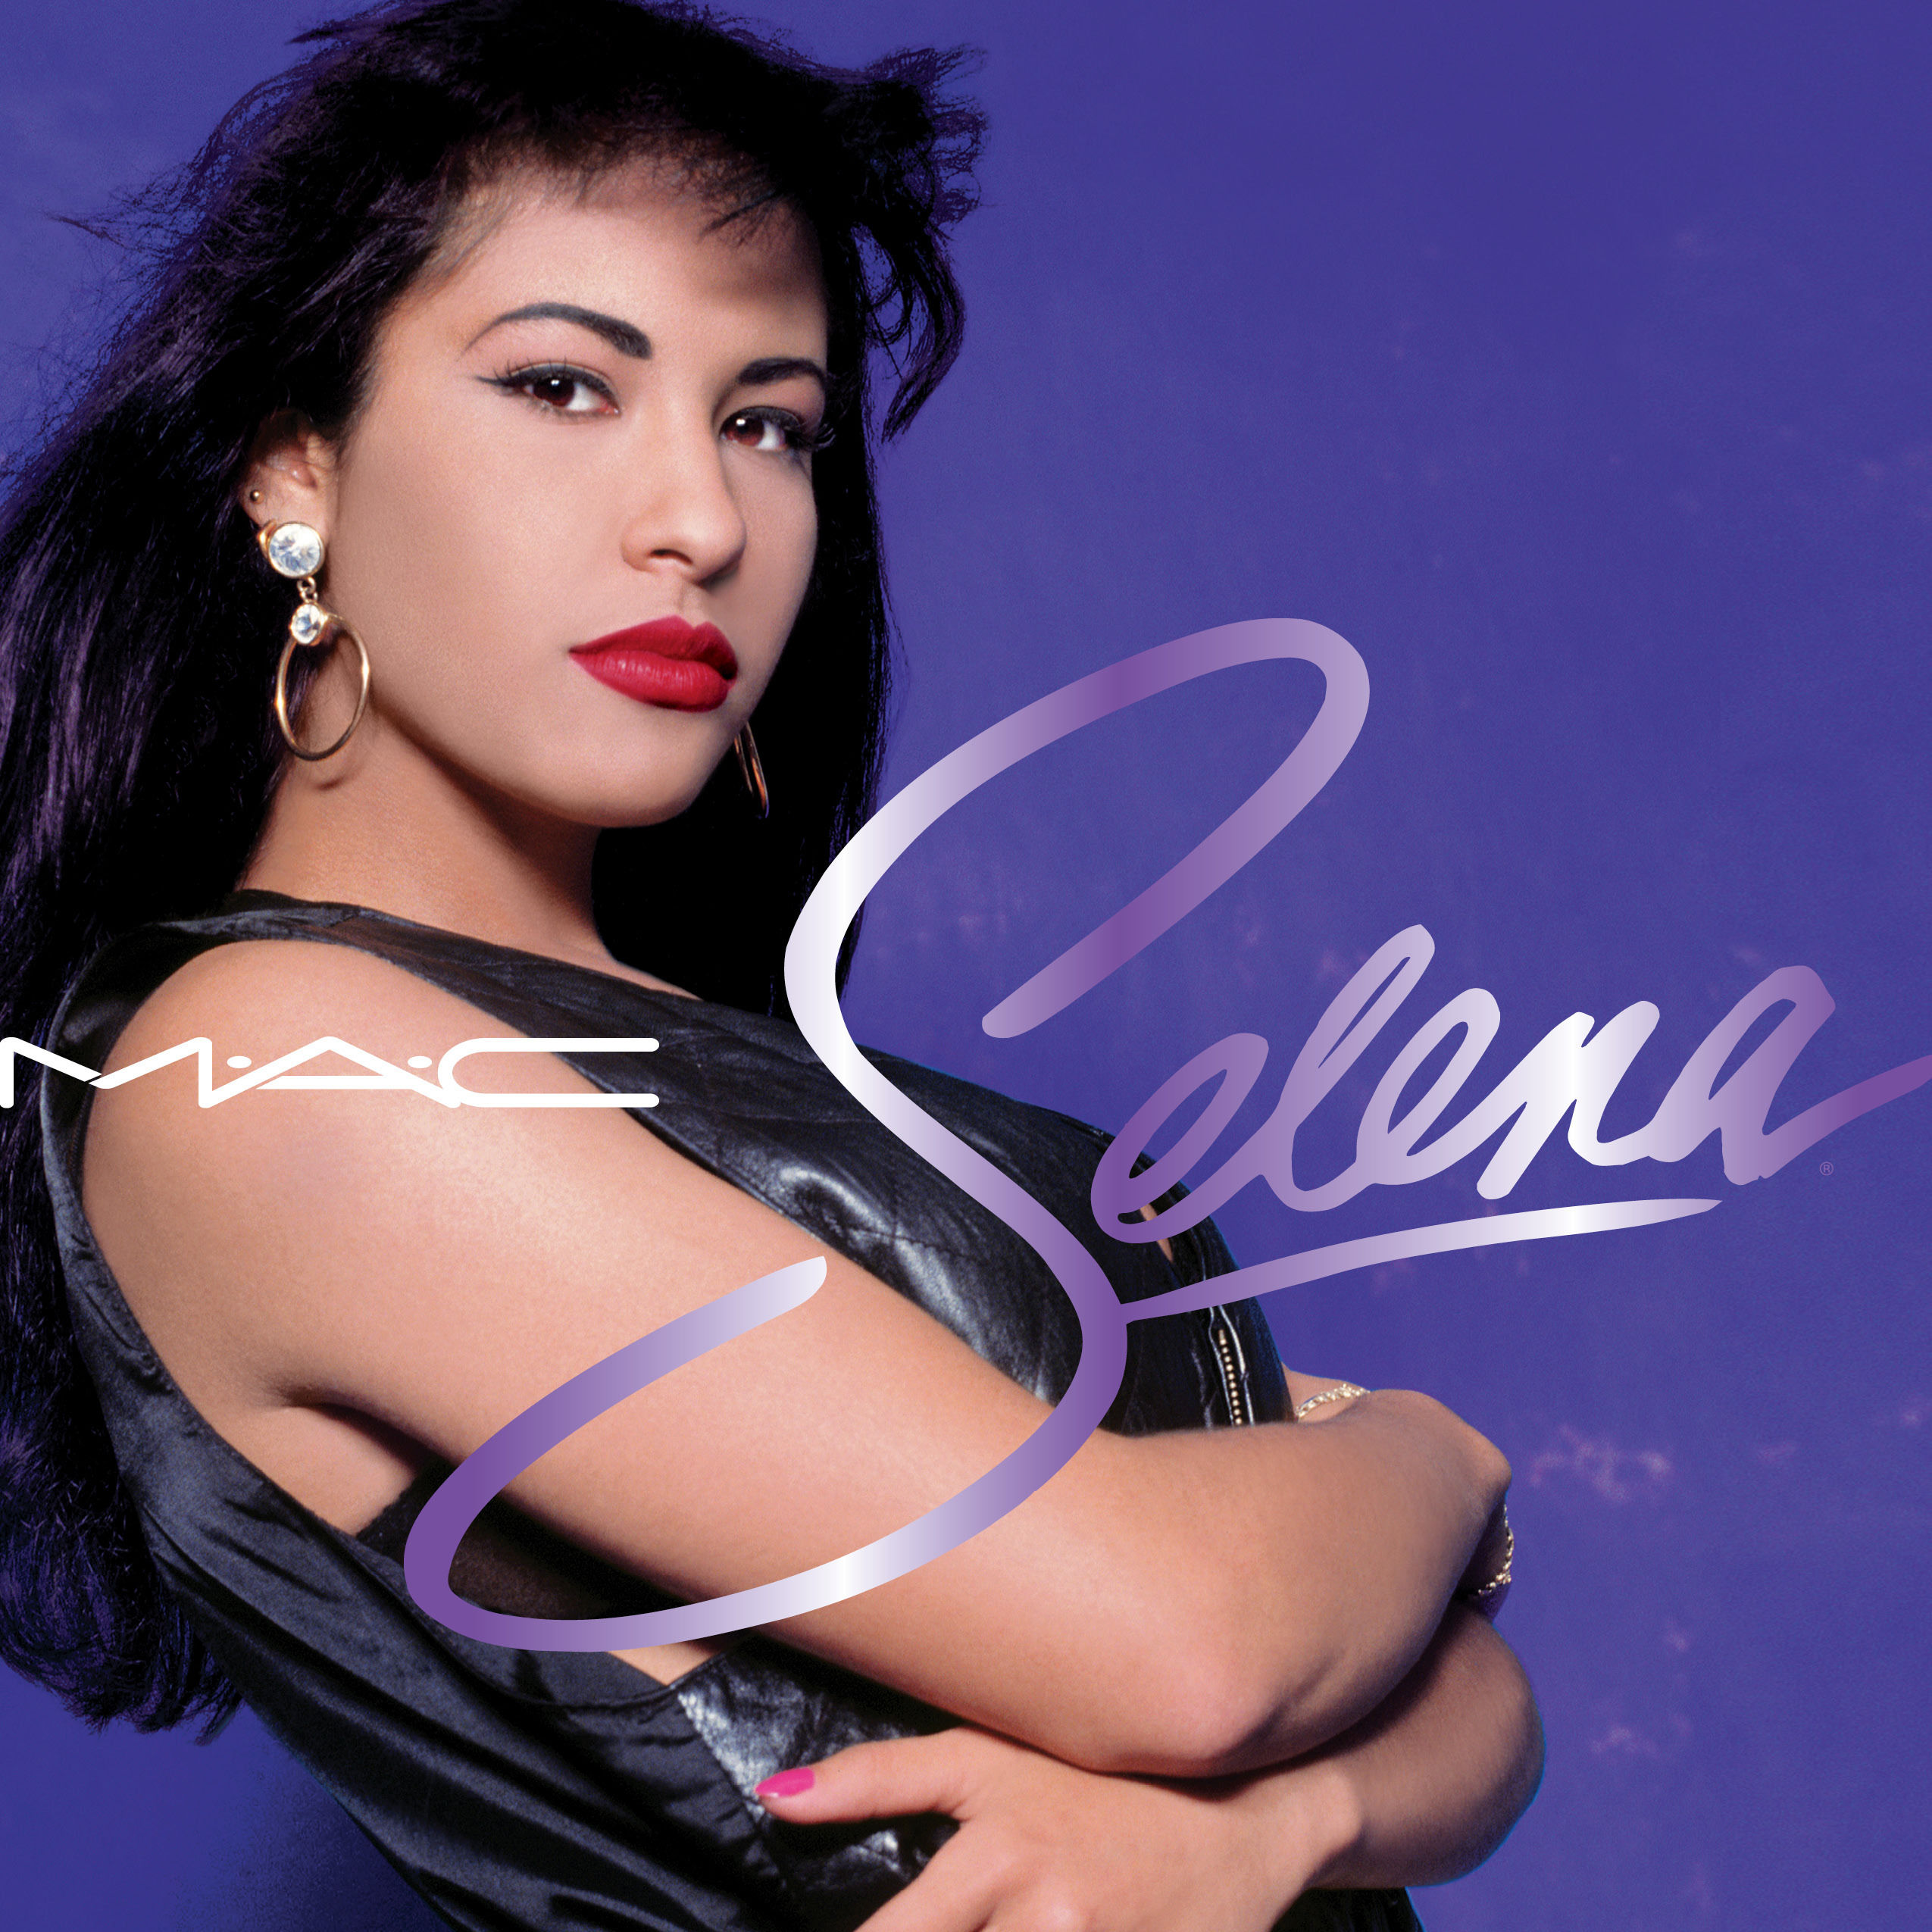 Selena beauty rgb 300 ycuxiz